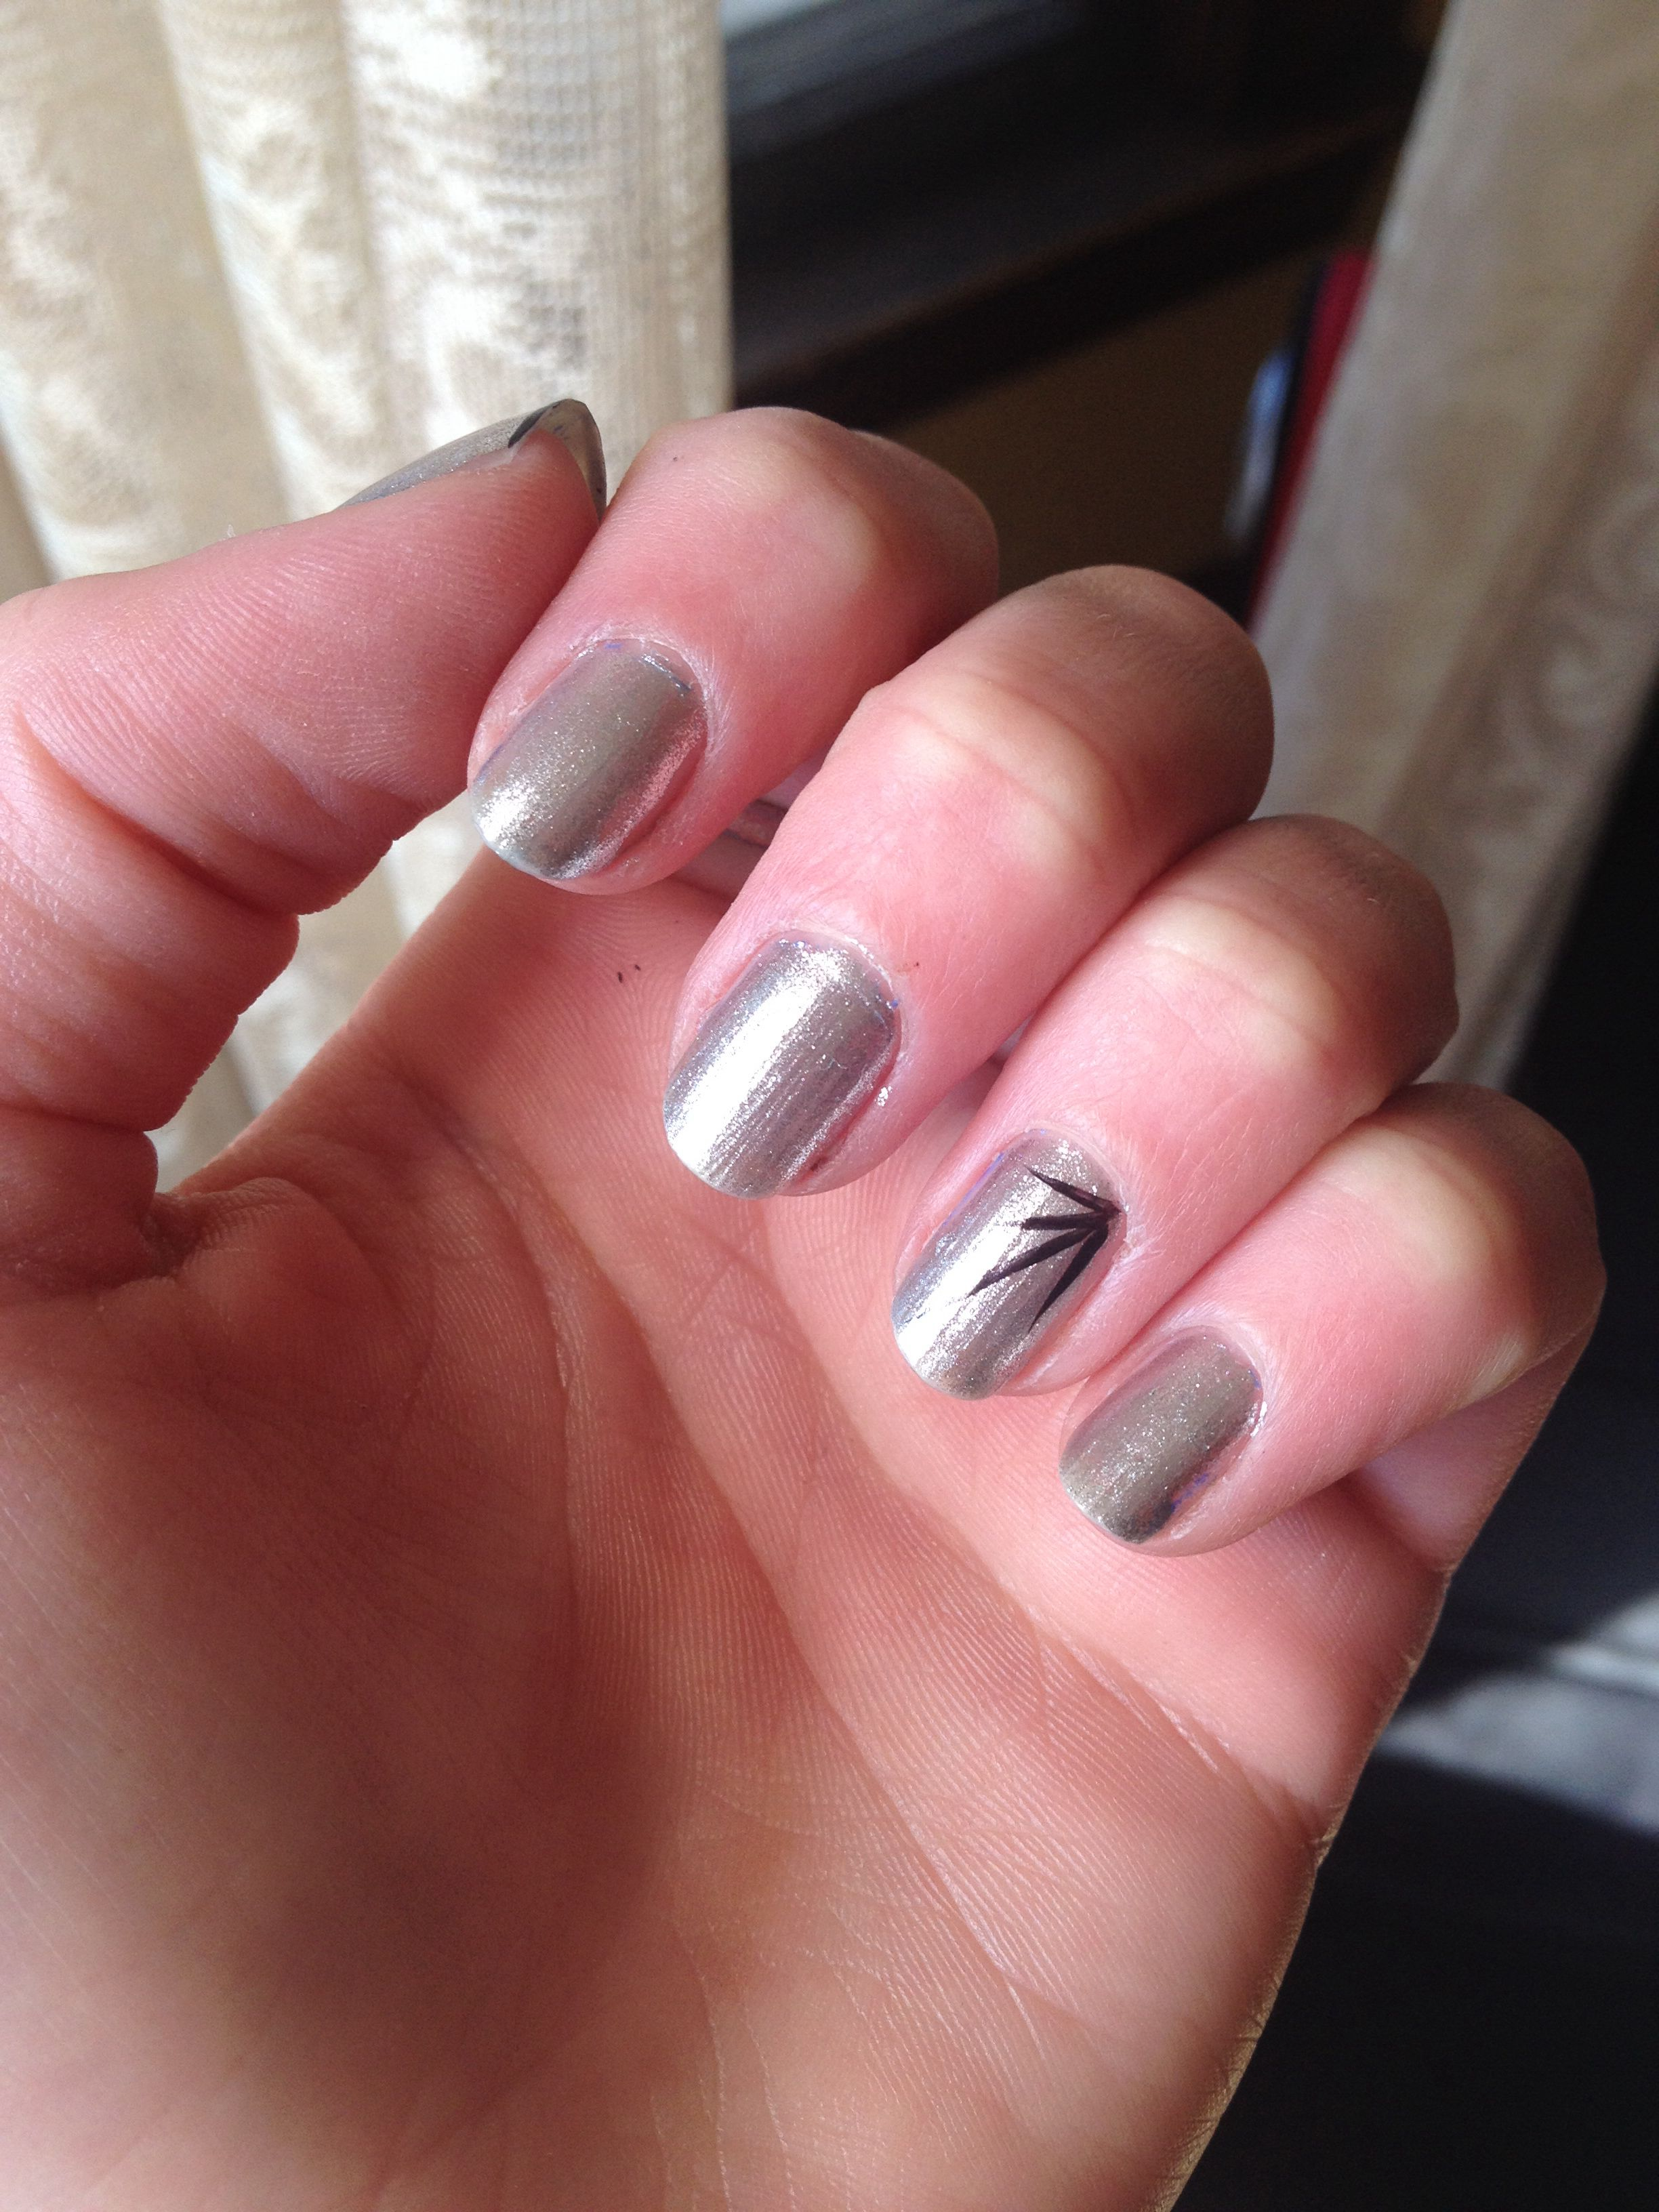 Silver Xtreme Nail polish, use a black thin tip for the easy line ...